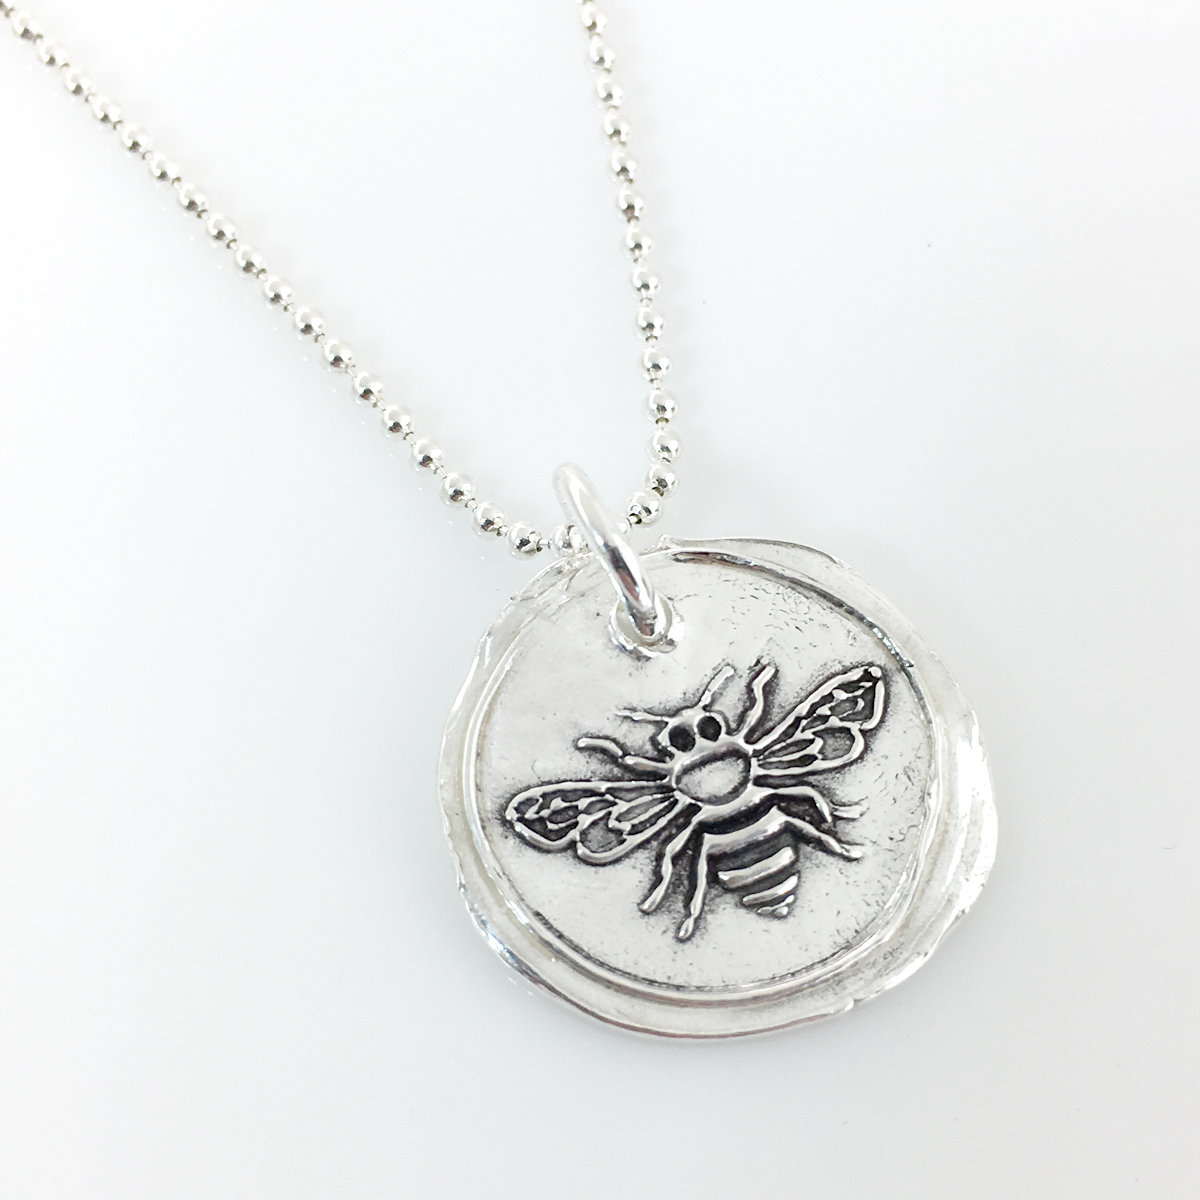 Bee | Honey Bee | Wax Seal Inspired Necklace (Ready to Ship)